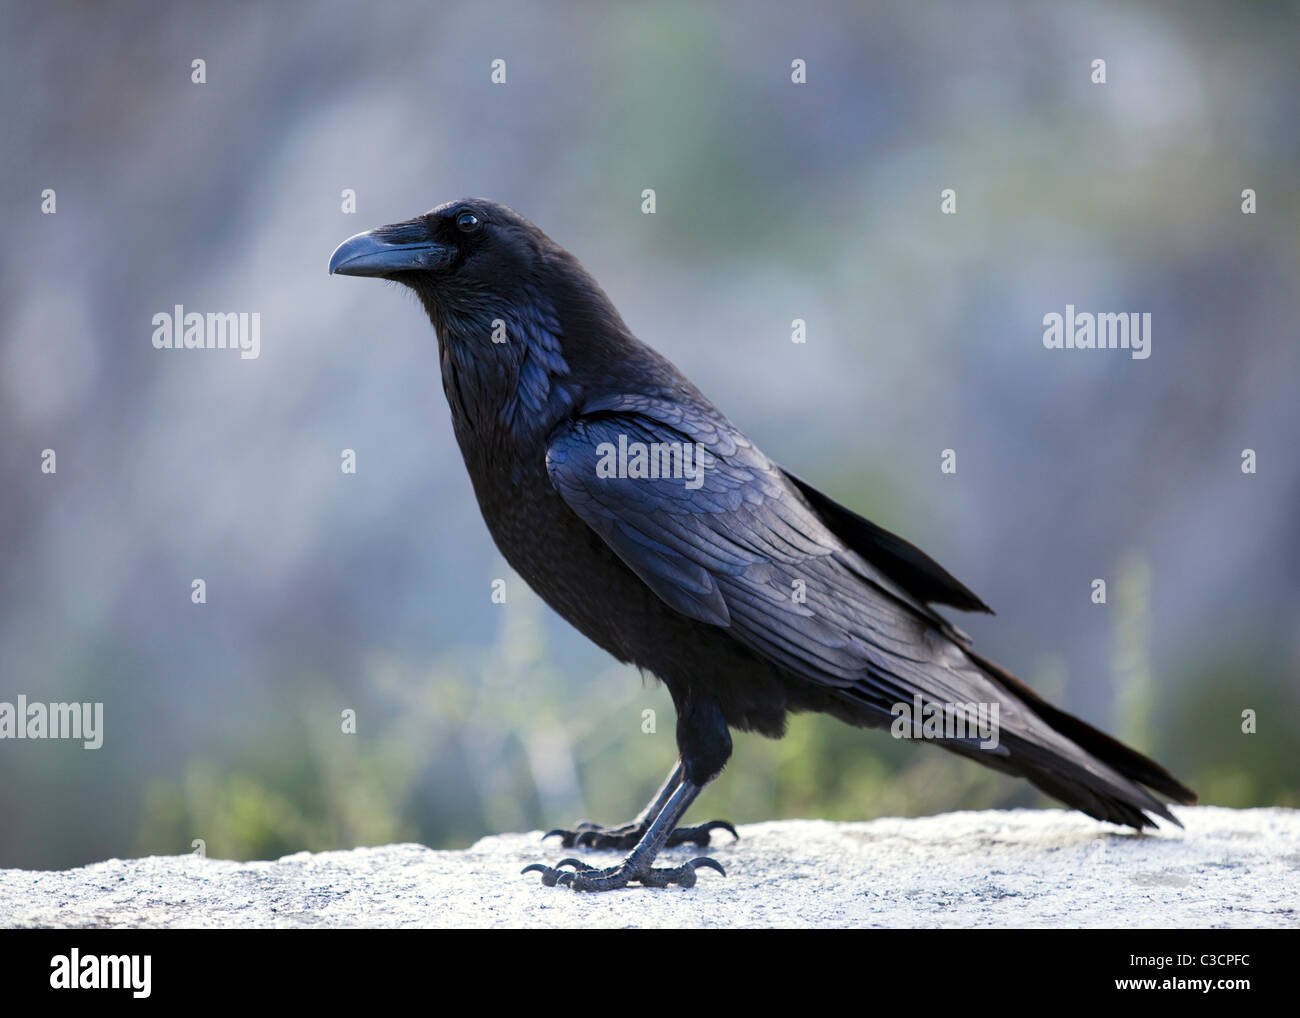 A closeup profile view of American Crow (Corvus brachyrhynchos) - Stock Image